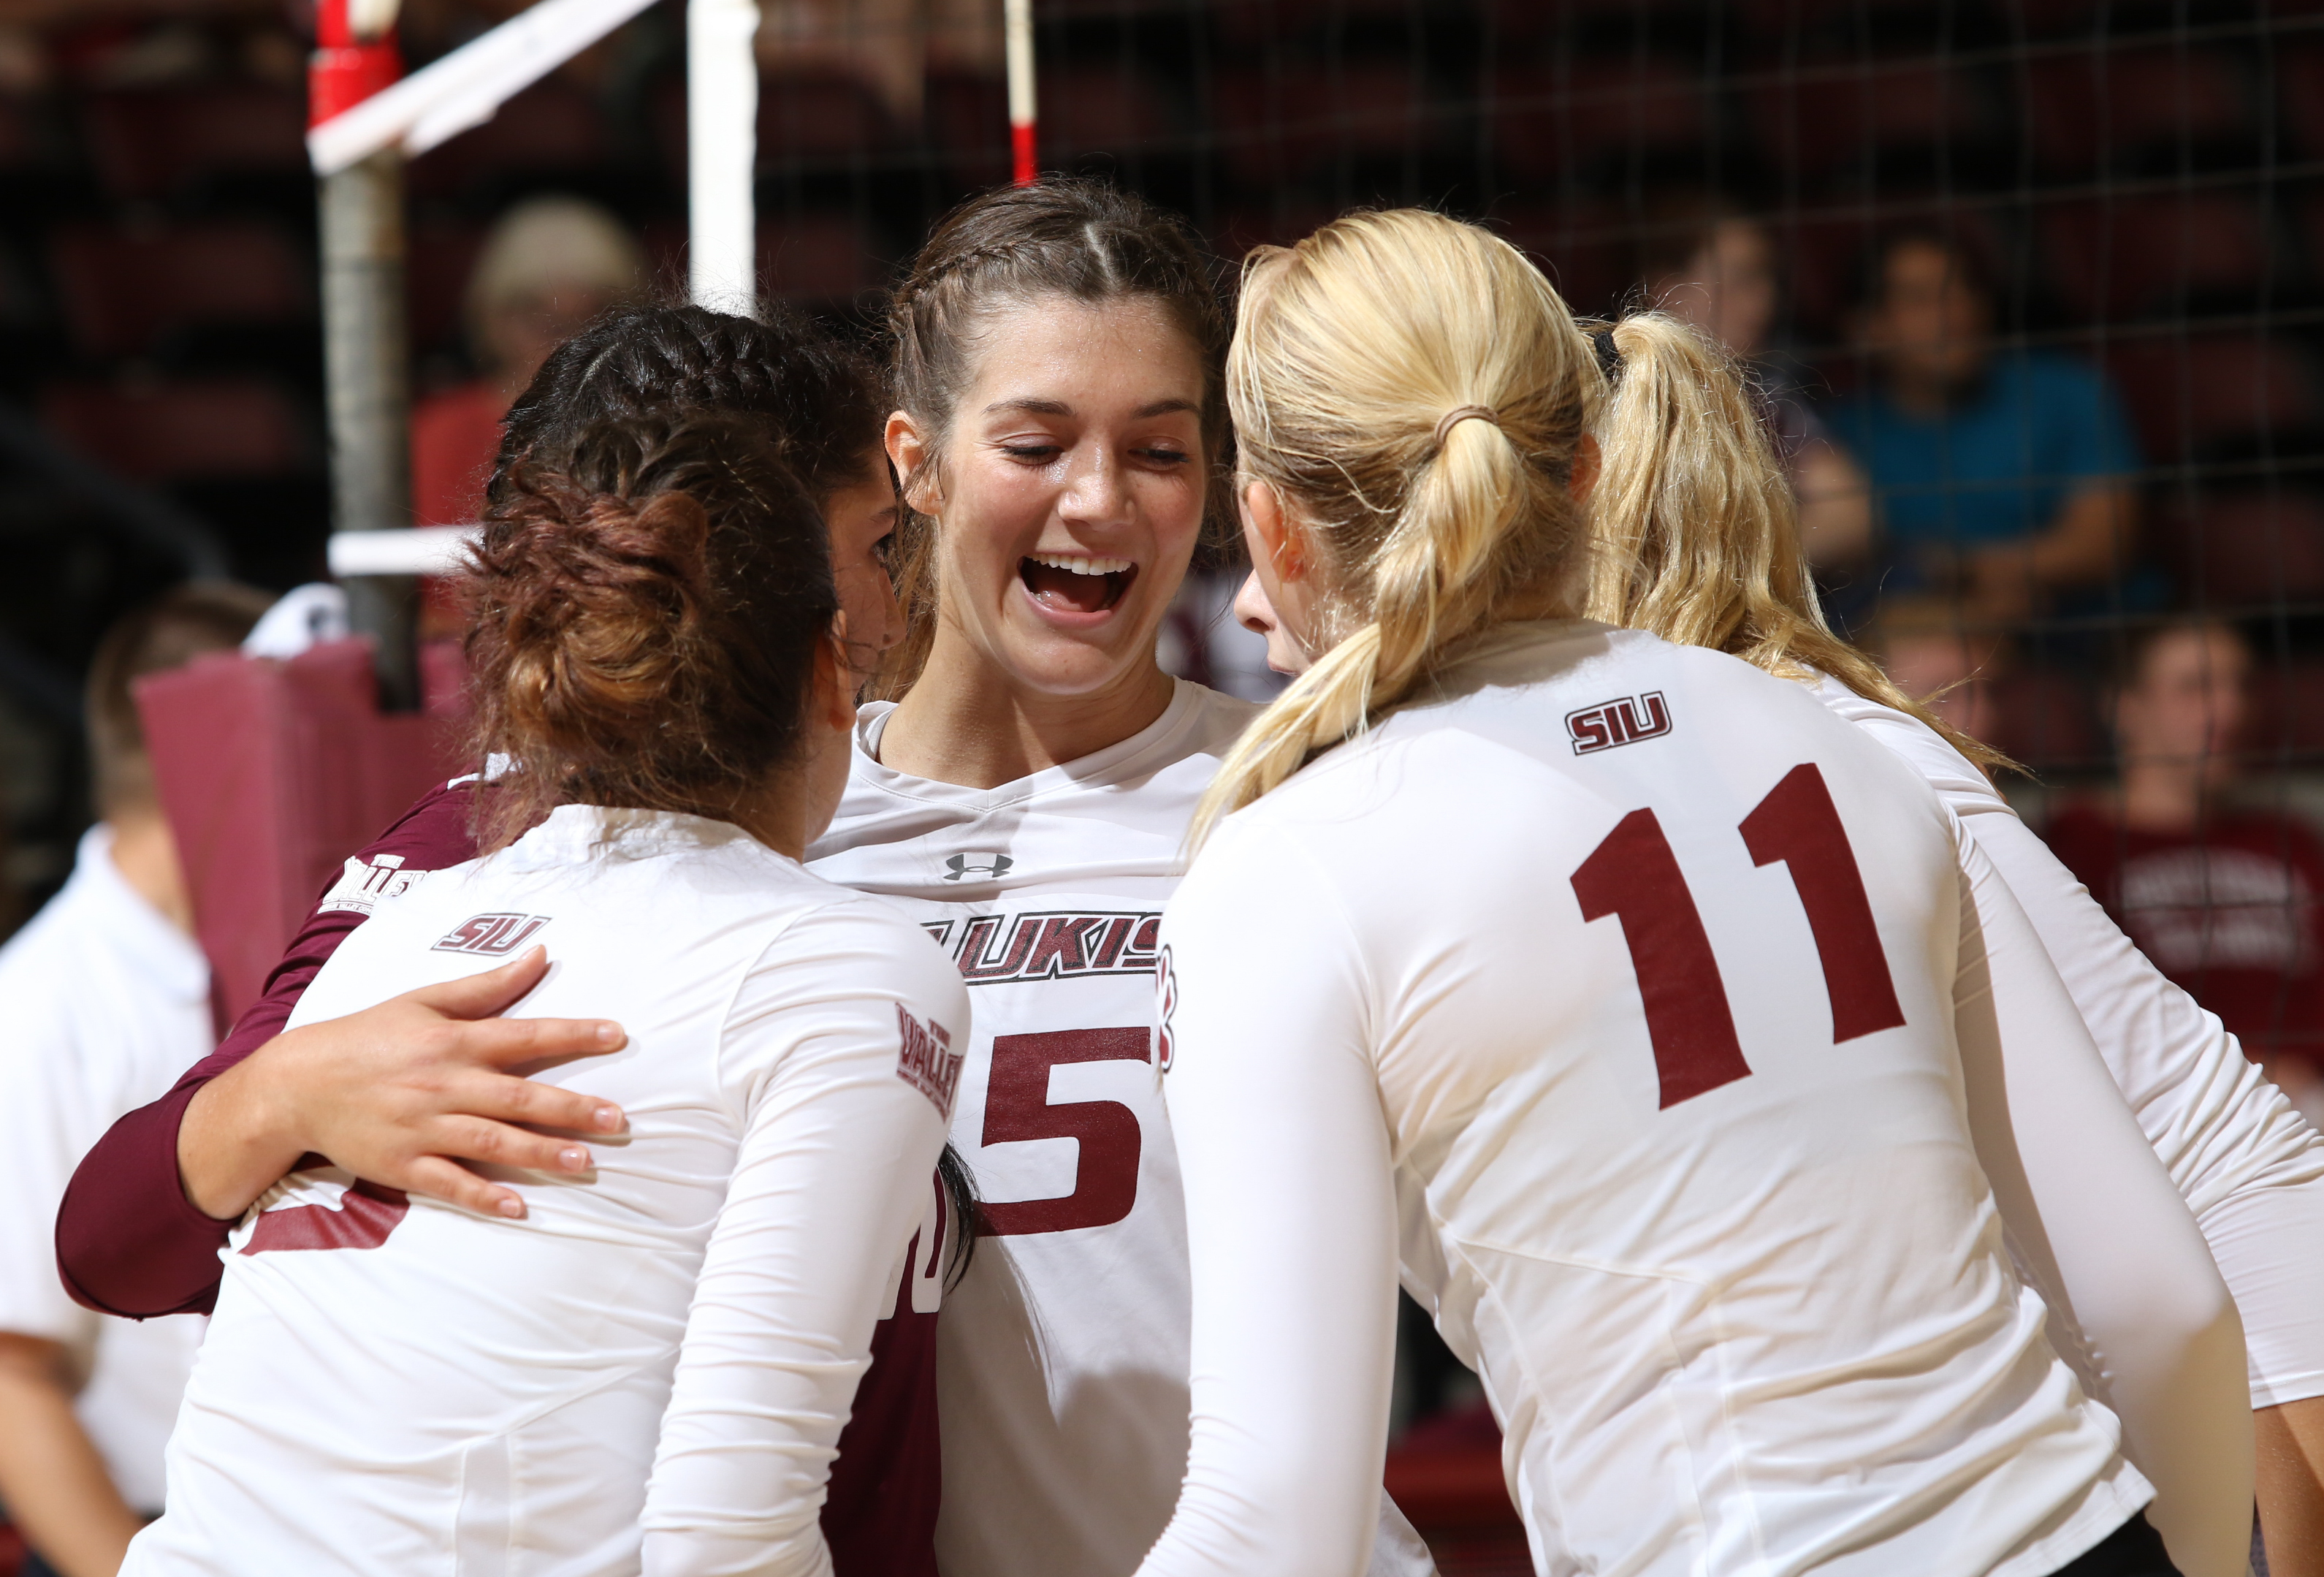 SIU's volleyball team celebrates a point.